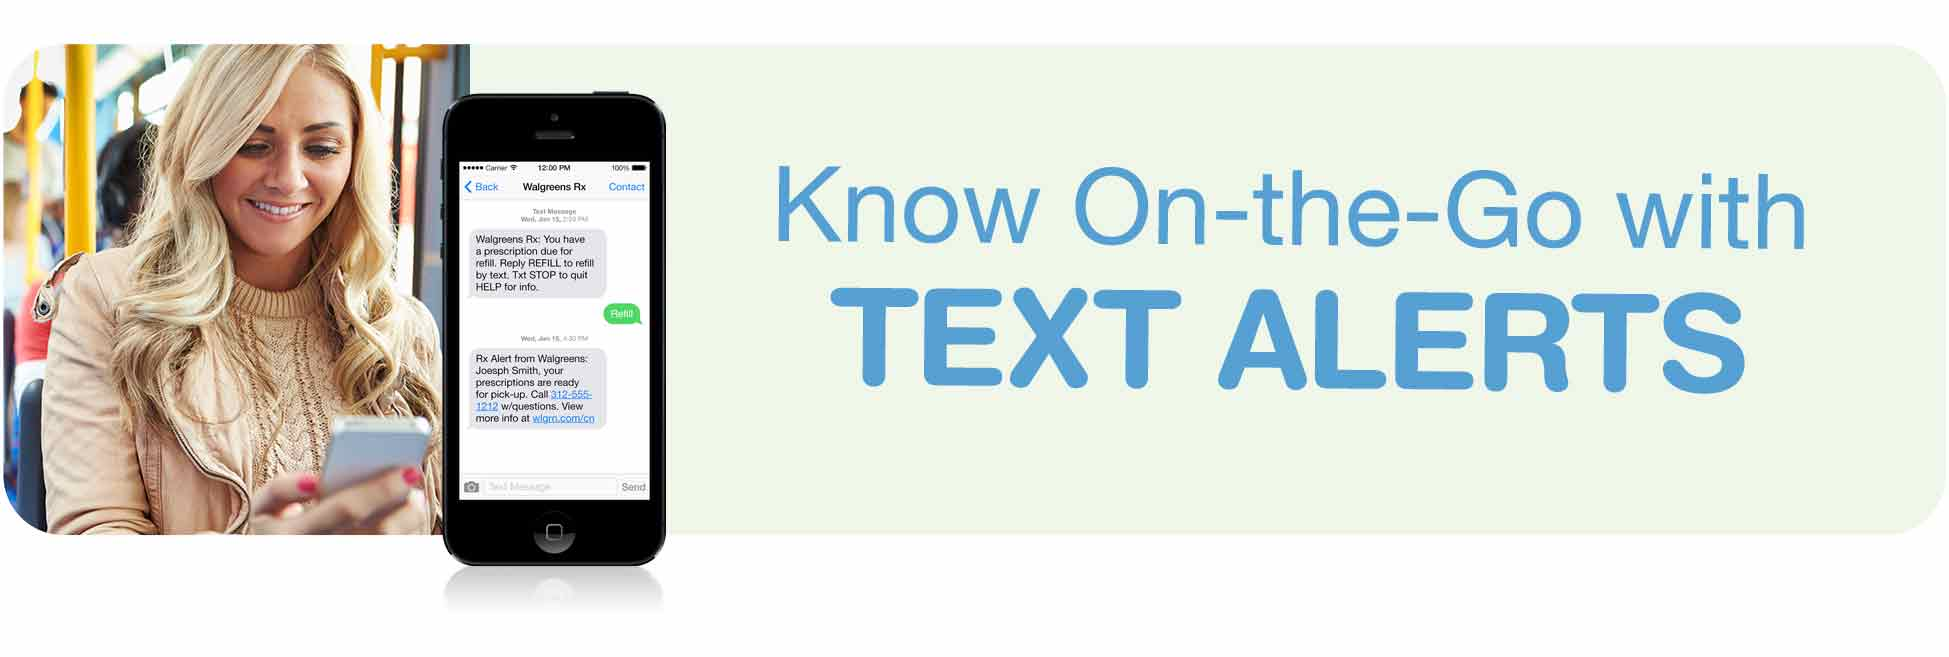 text opt in for rx alerts walgreens know on the go text alerts